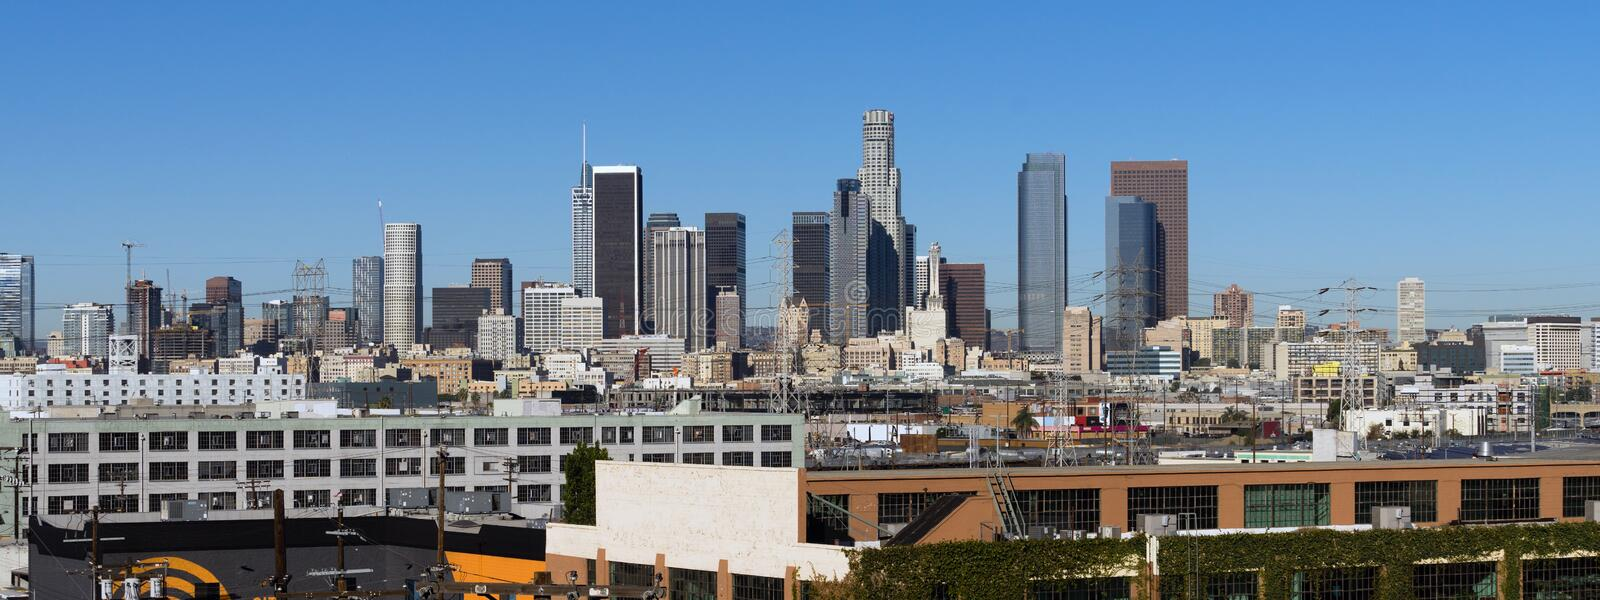 Industrial View Los Angeles Downtown Urban City Skyline royalty free stock photography